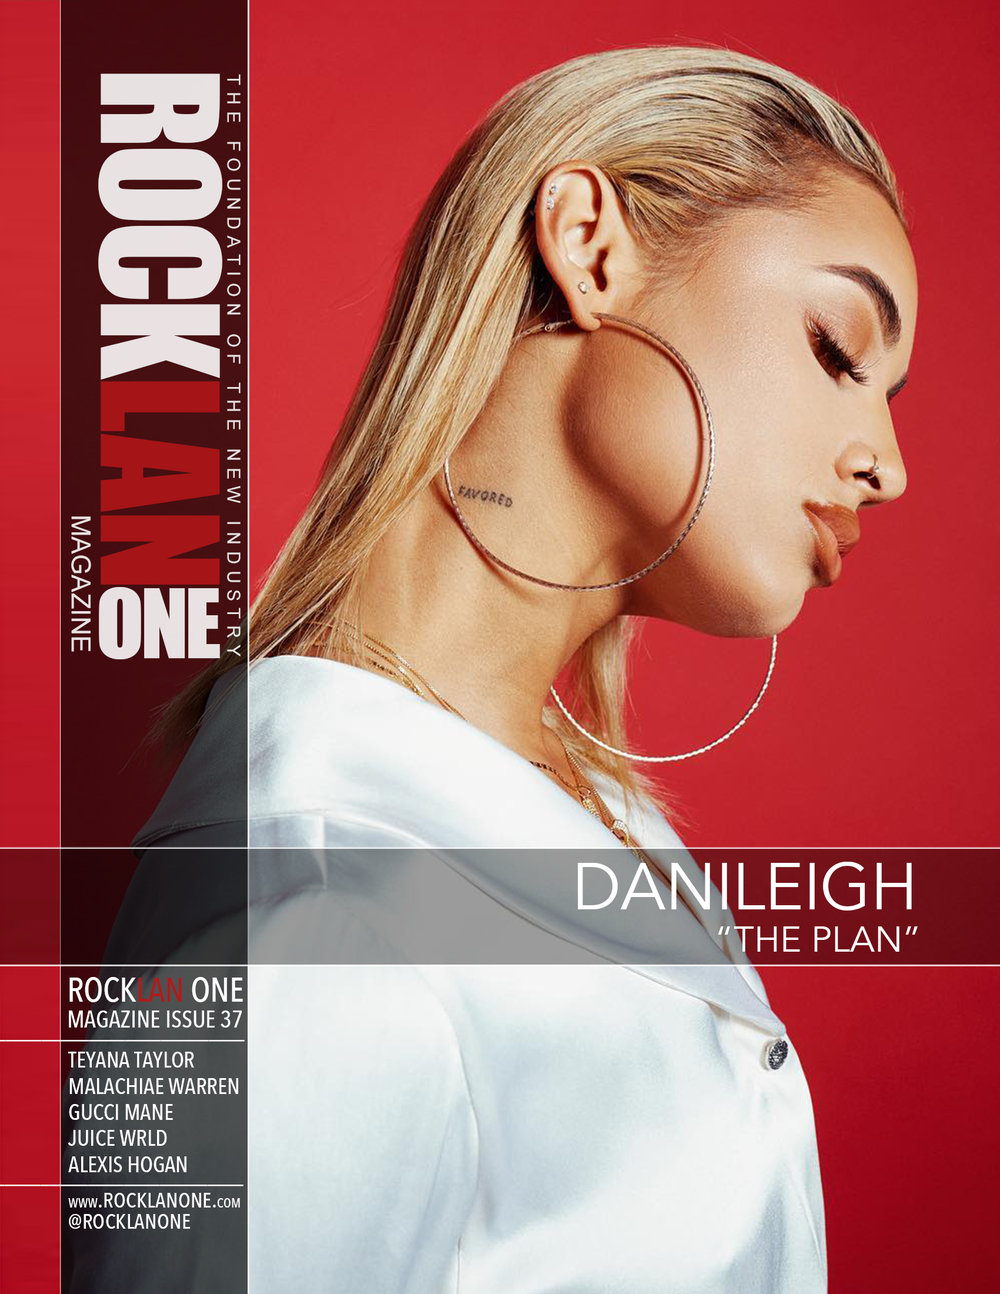 RockLan One Magazine - DaniLeigh